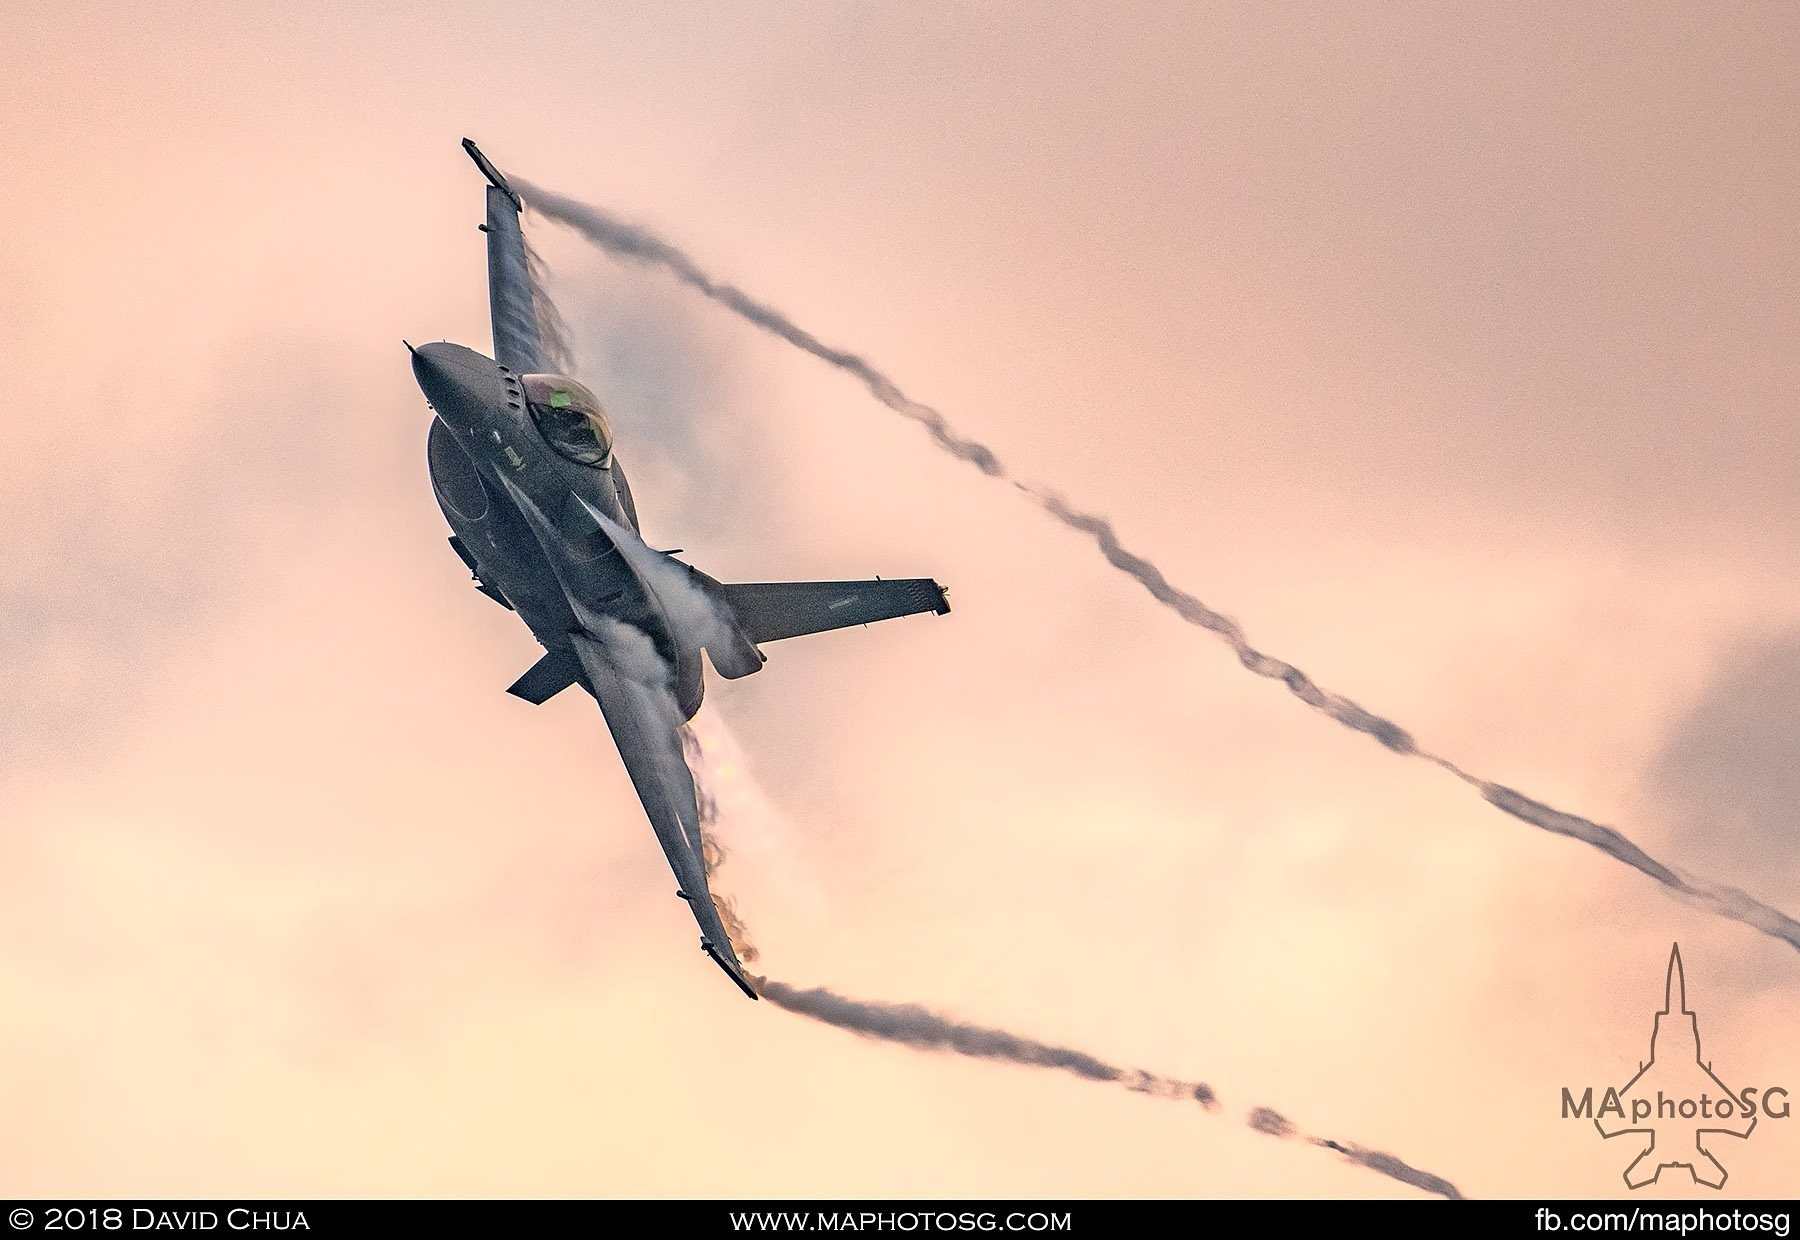 54. Hellenic Air Force Zeus F-16 pulls some Gs as the sun sets